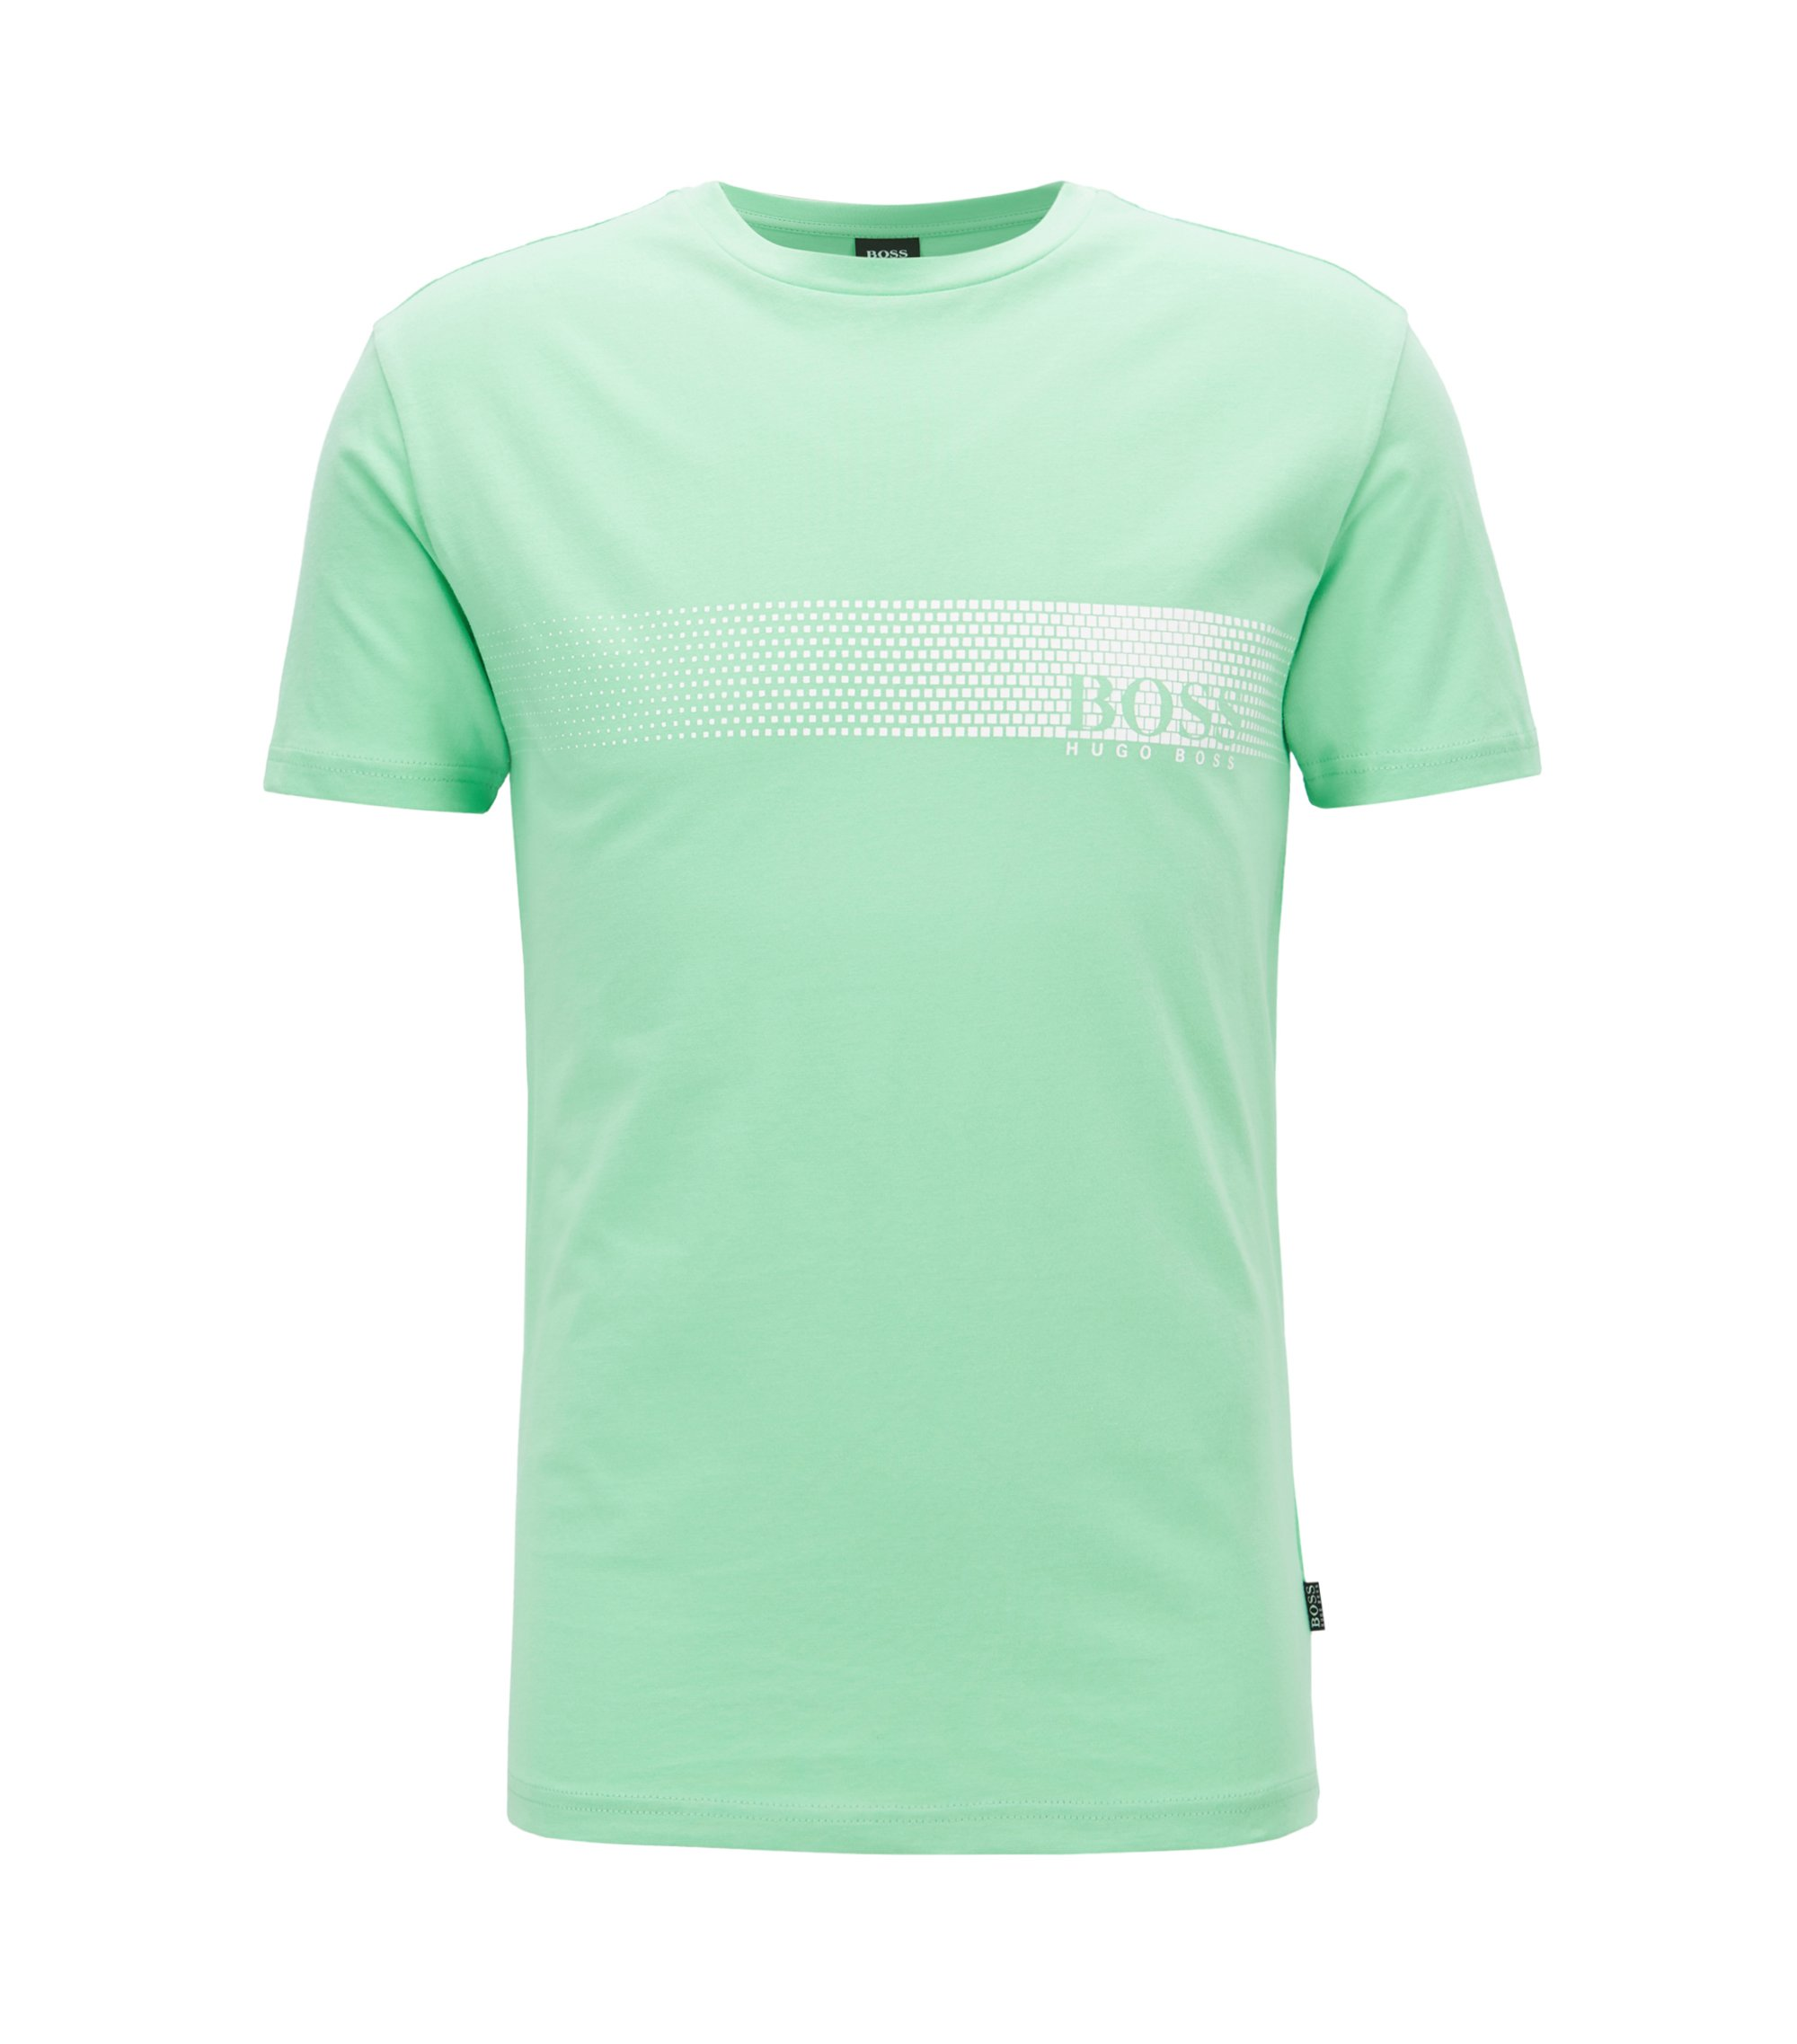 Sunsafe logo T-shirt in cotton, Light Green